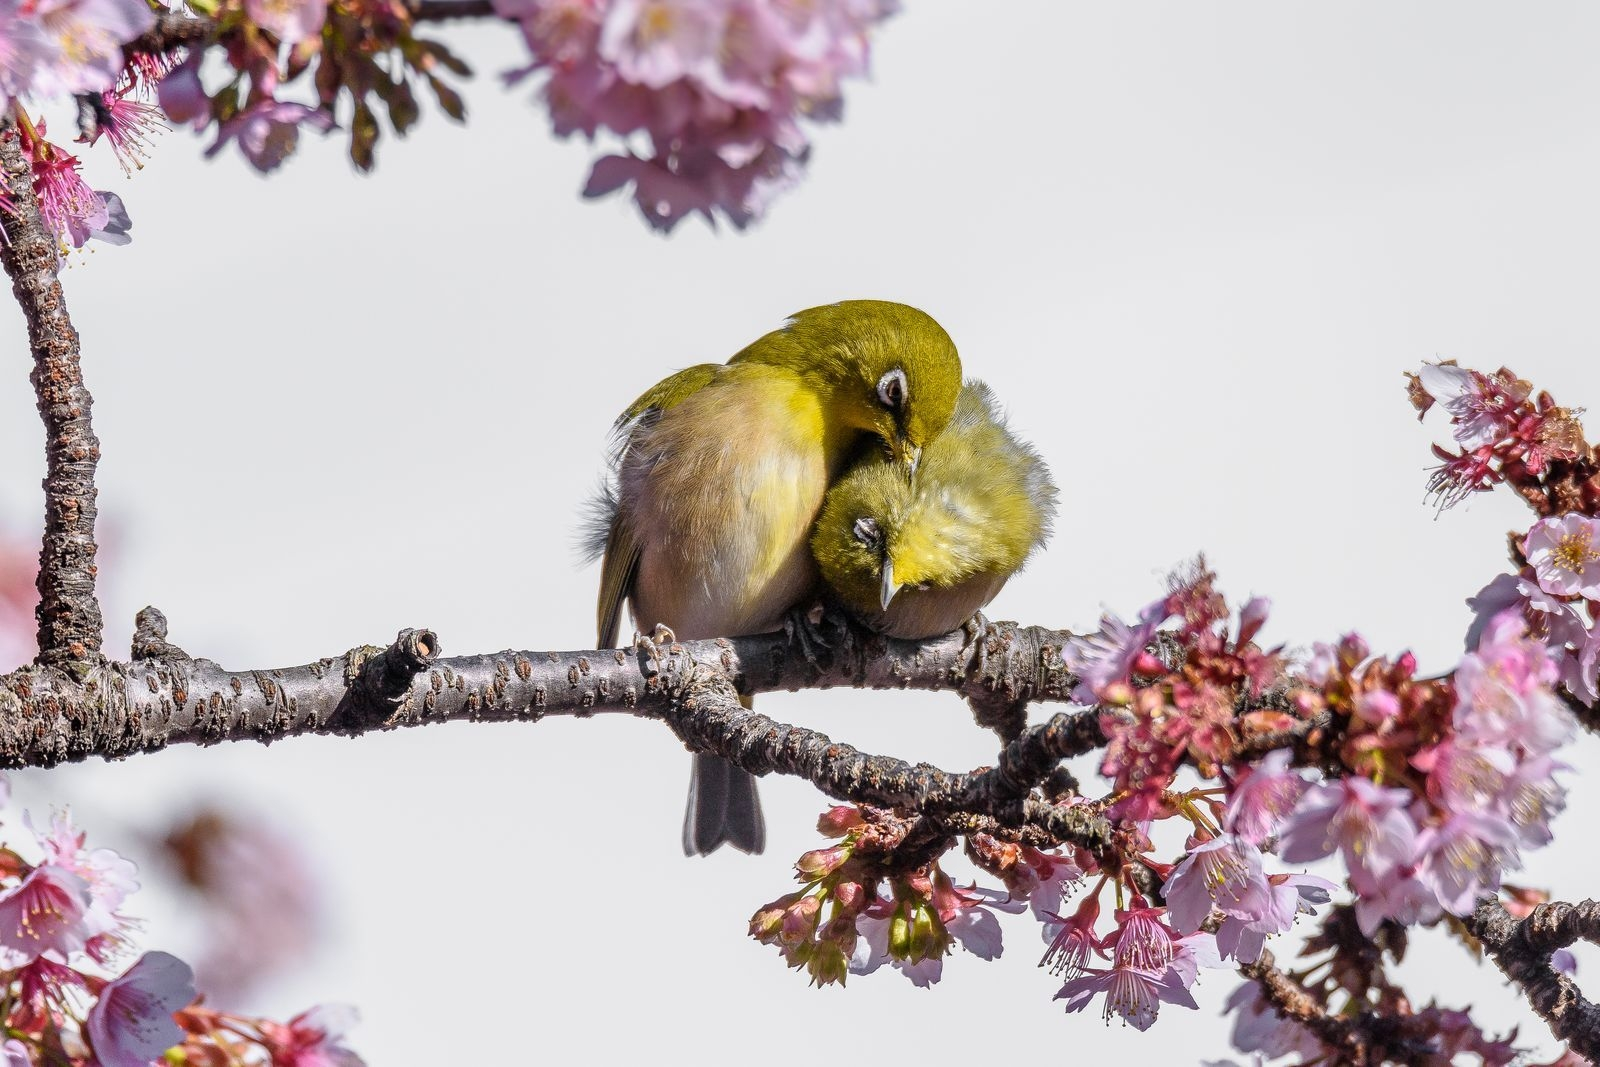 Photograph by Michel Godimus, National Geographic Your Shot